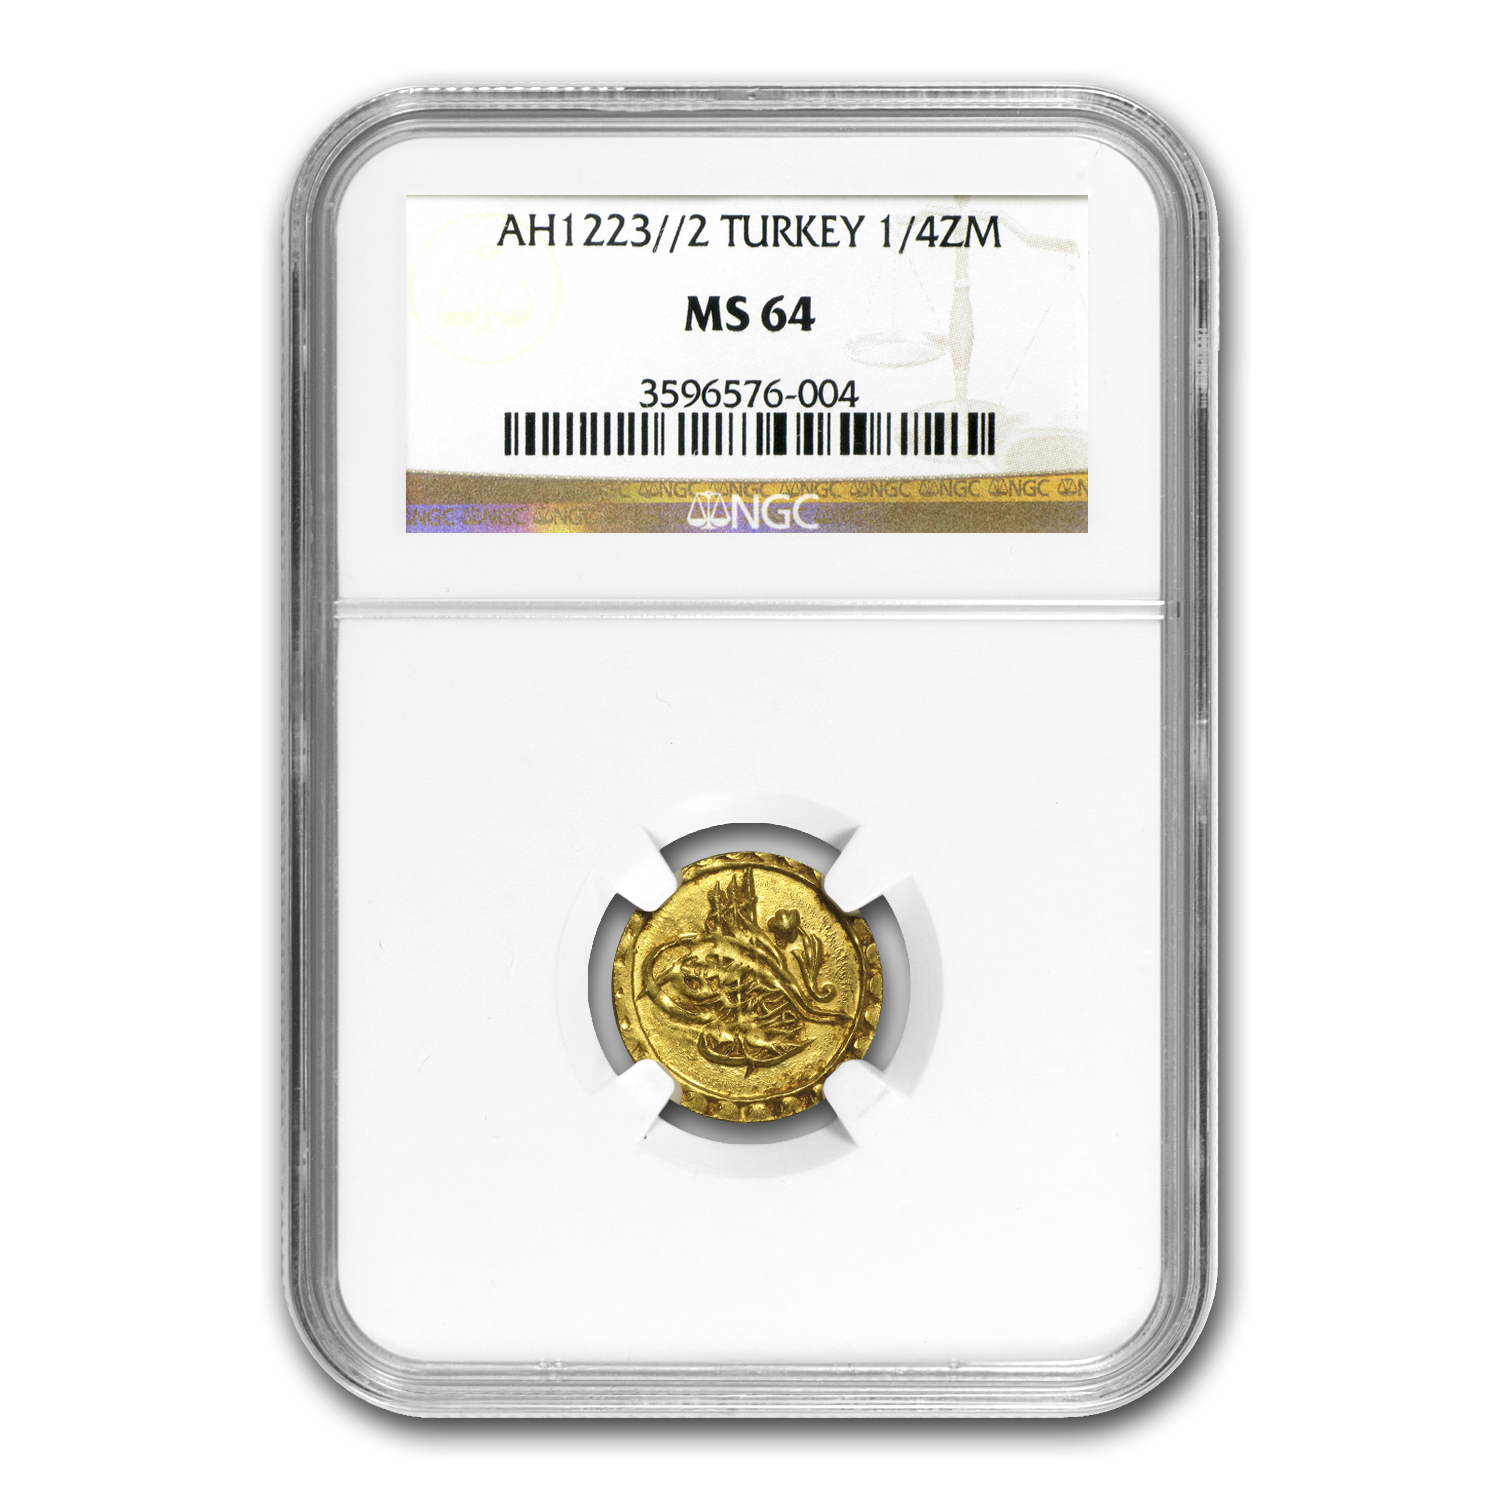 AH1223-1255 Turkey Gold 1/4 Zeri Mahbub MS-64 NGC